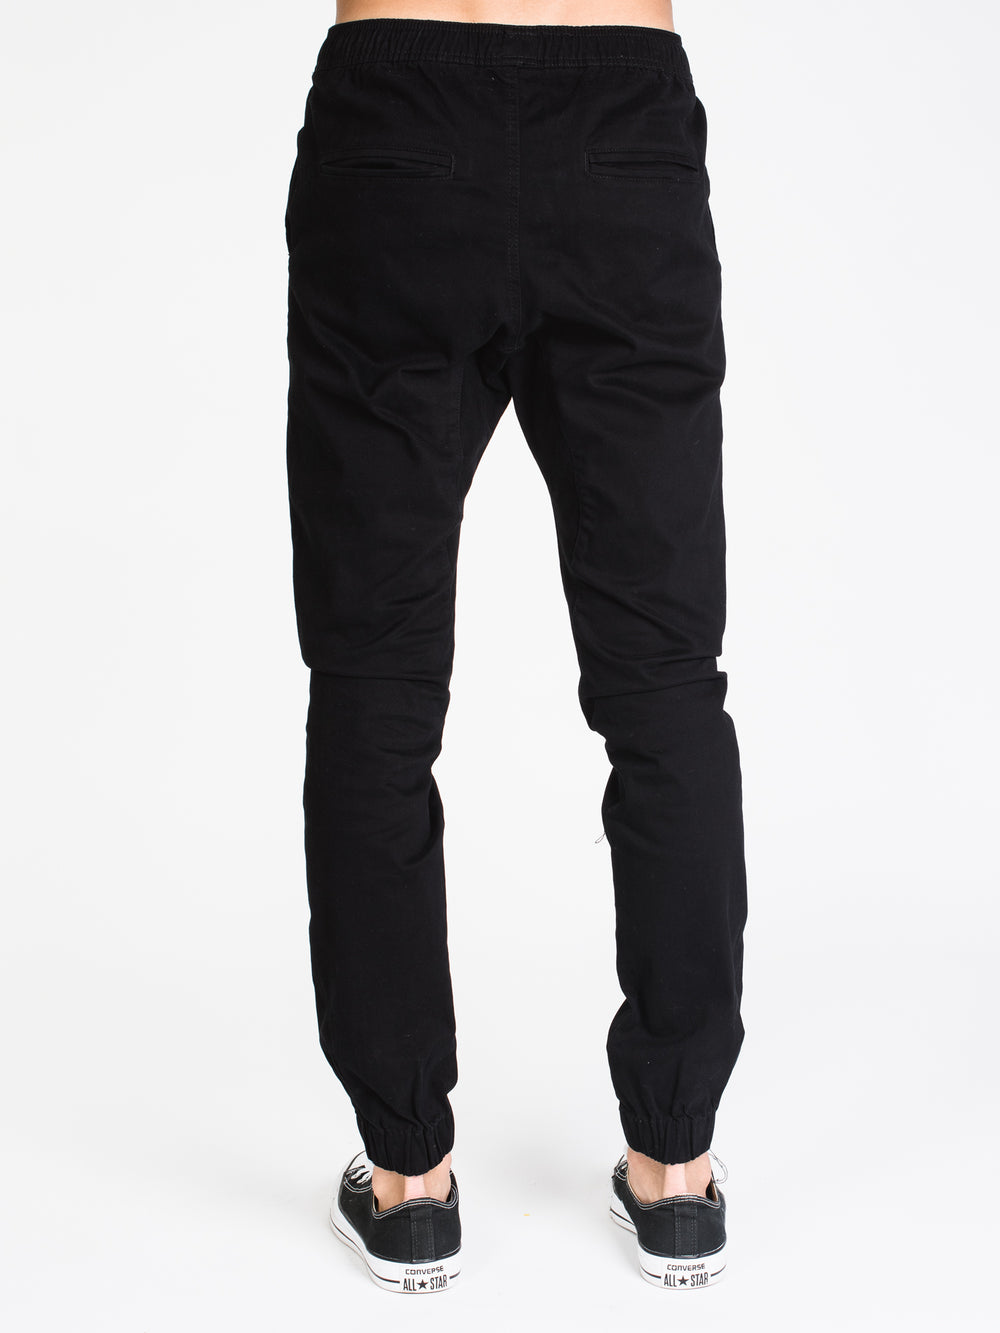 MENS PROJECT ZANEROBE JOGGER - BLACK